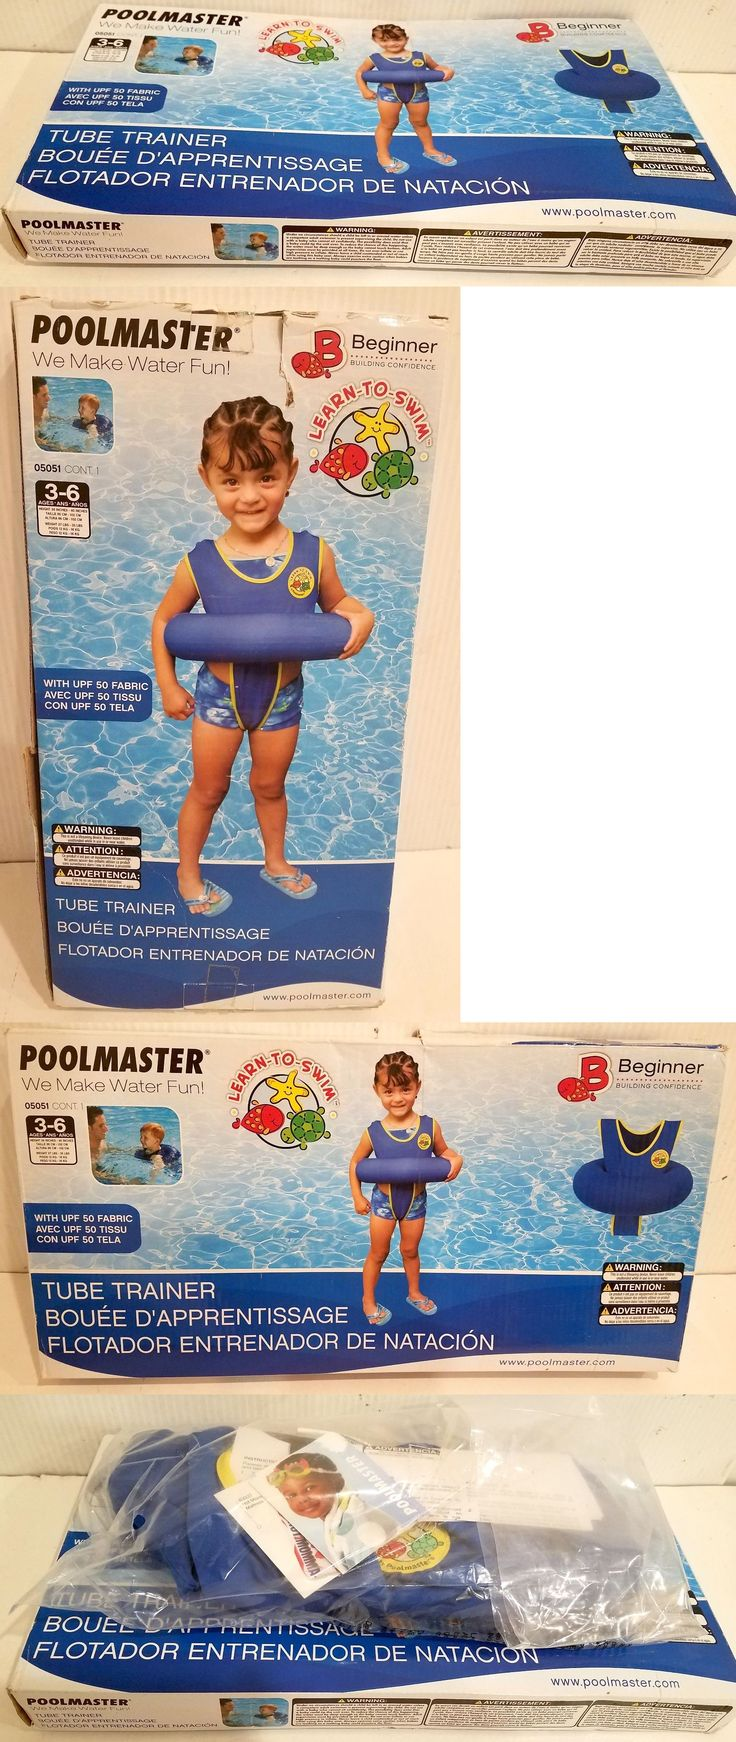 Training Aids 159175: Poolmaster 50505 Swimming Pool Tube Swim Trainer Swimming Aid Blue Beginner New! -> BUY IT NOW ONLY: $34.99 on eBay!